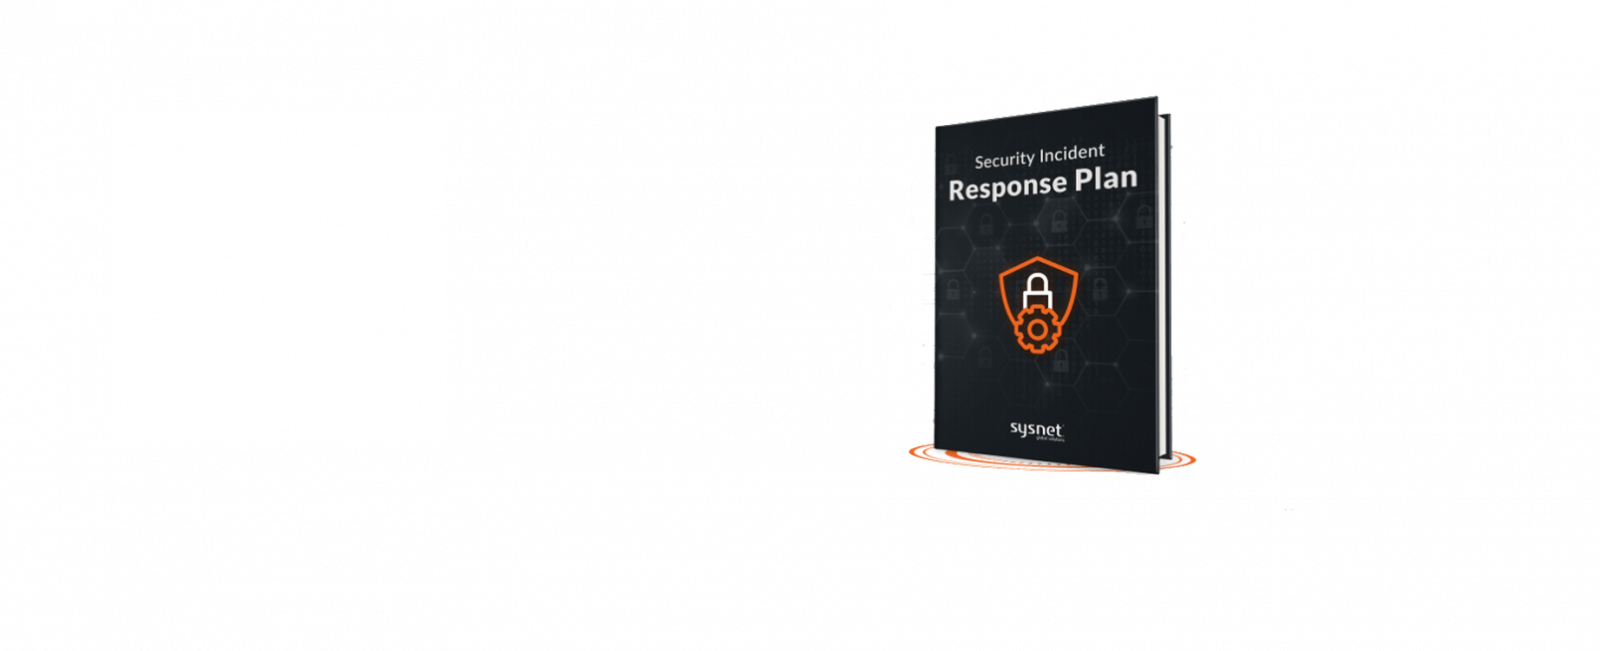 pci incident response plan template - cyber security and compliance solutions data security